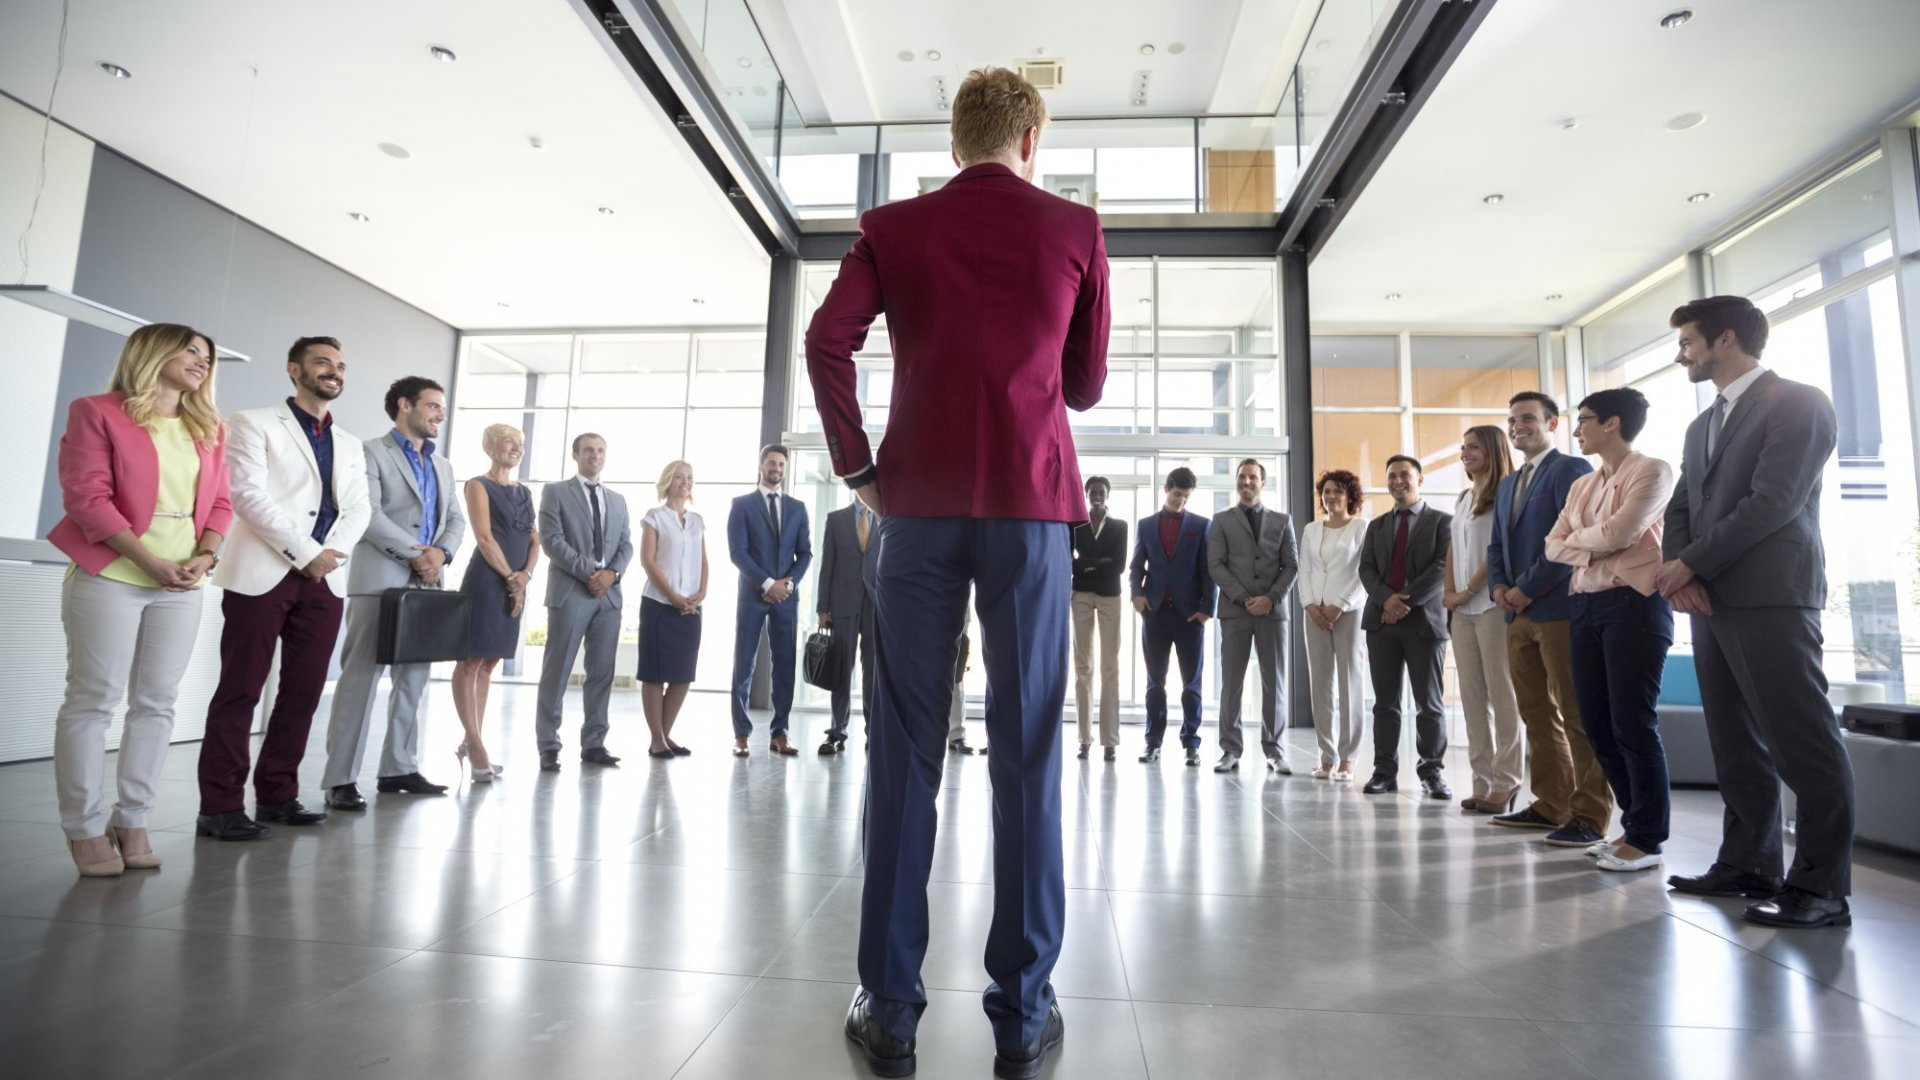 12 Things You Should Never Take for Granted After Working for an Amazing Boss